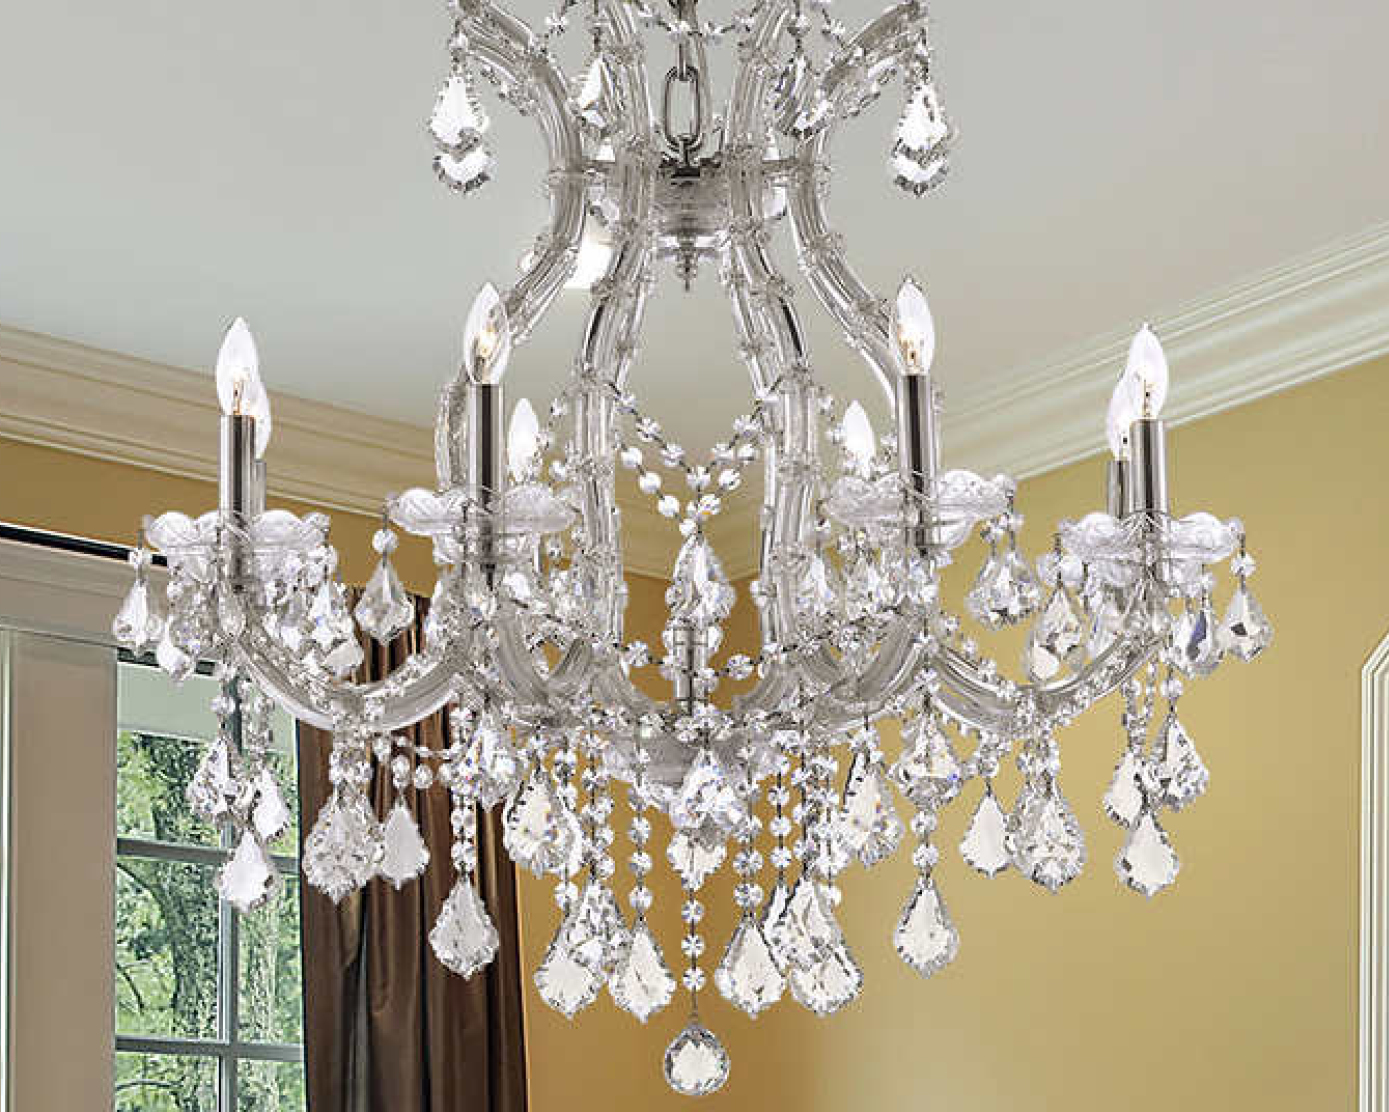 Costco Chandelier Canada Home Staging With The Minmaxx Team Full Home Staging Sell